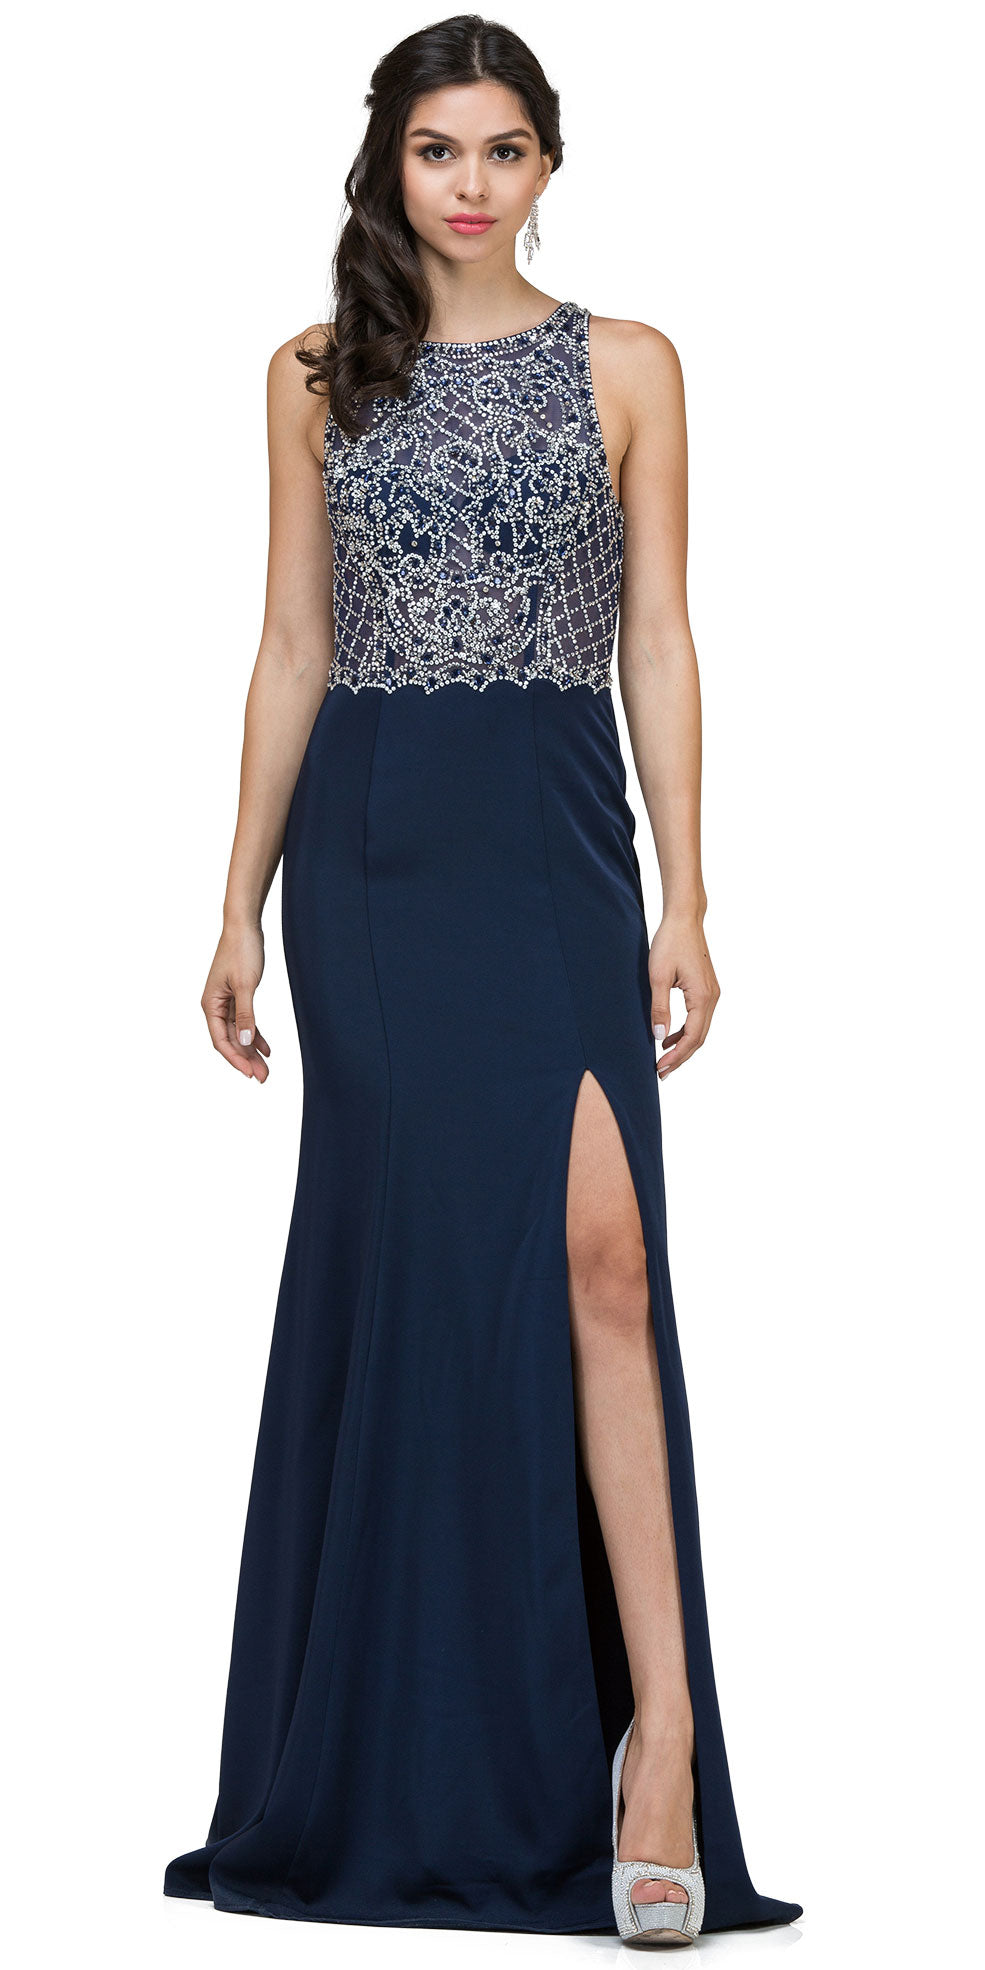 Image of Rhinestones Mesh Top Keyhole Back Long Prom Dress in Navy